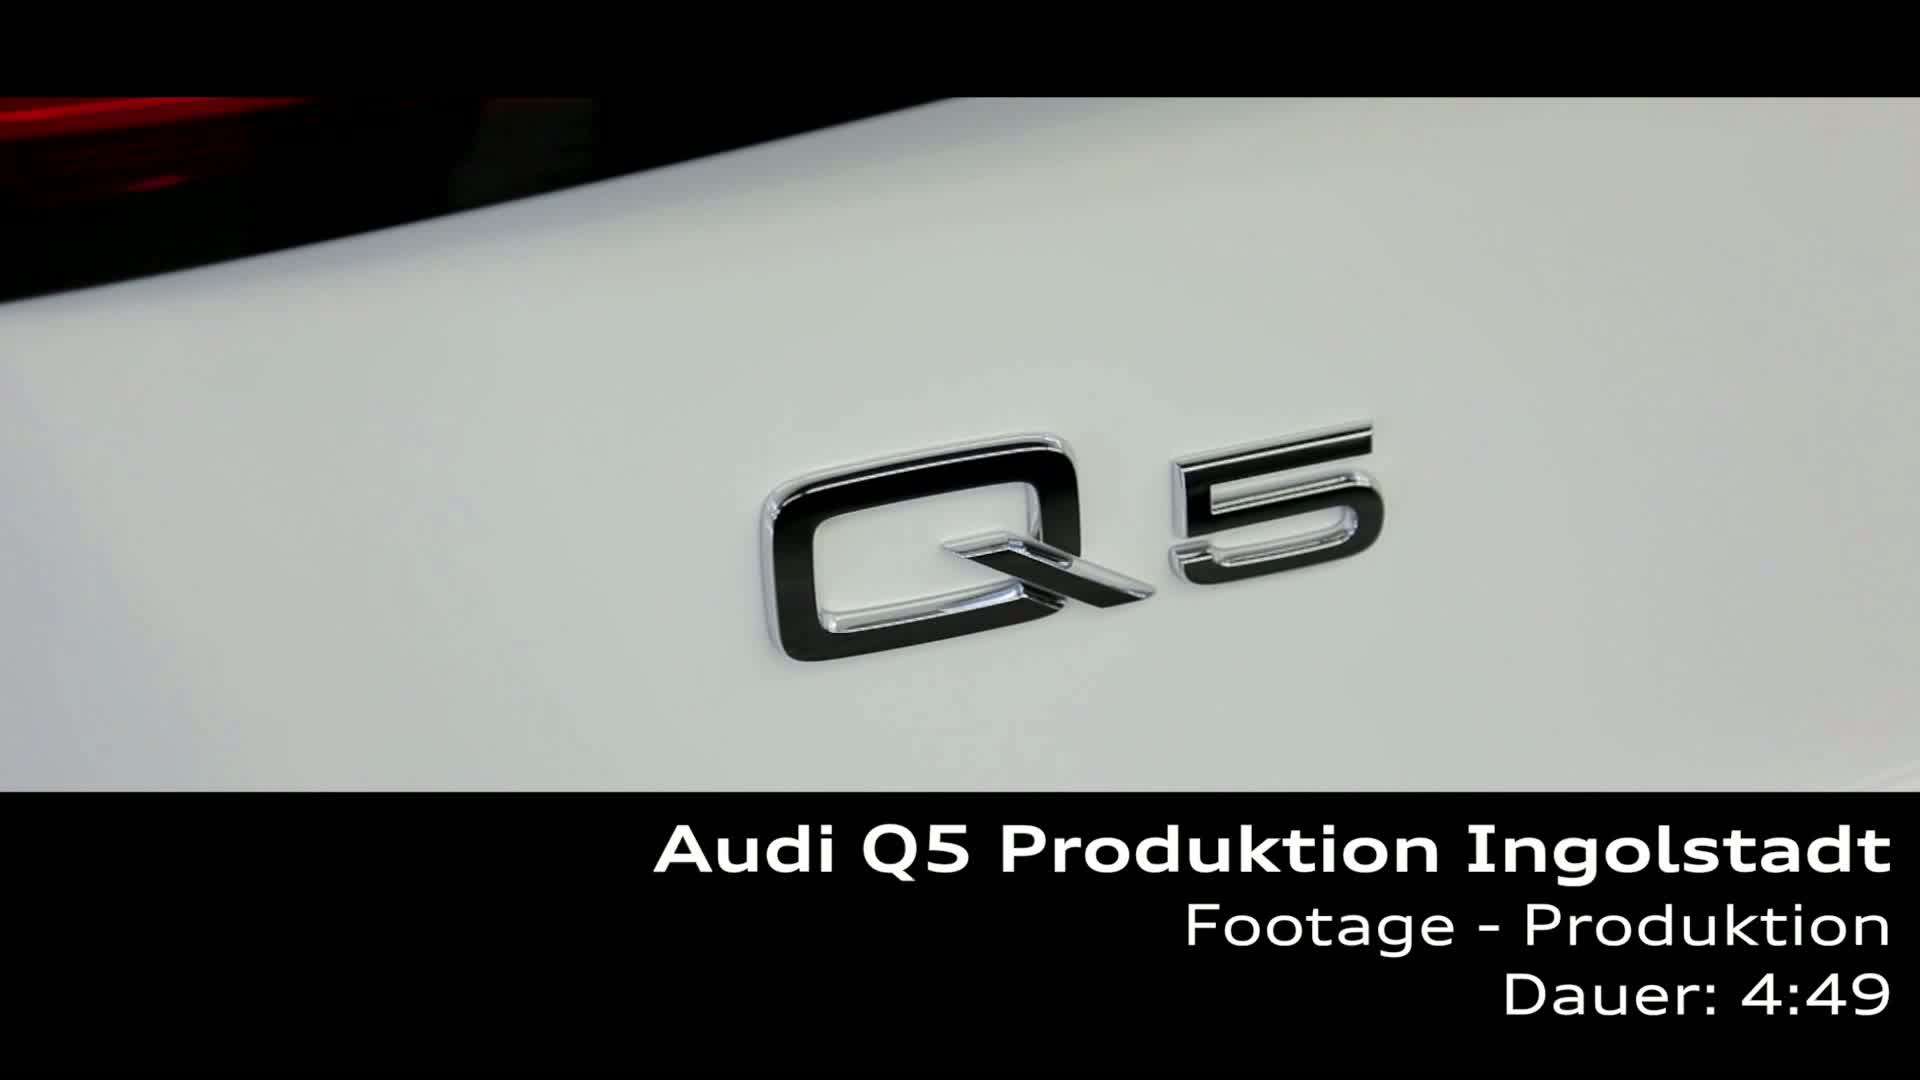 Audi Q5 - production